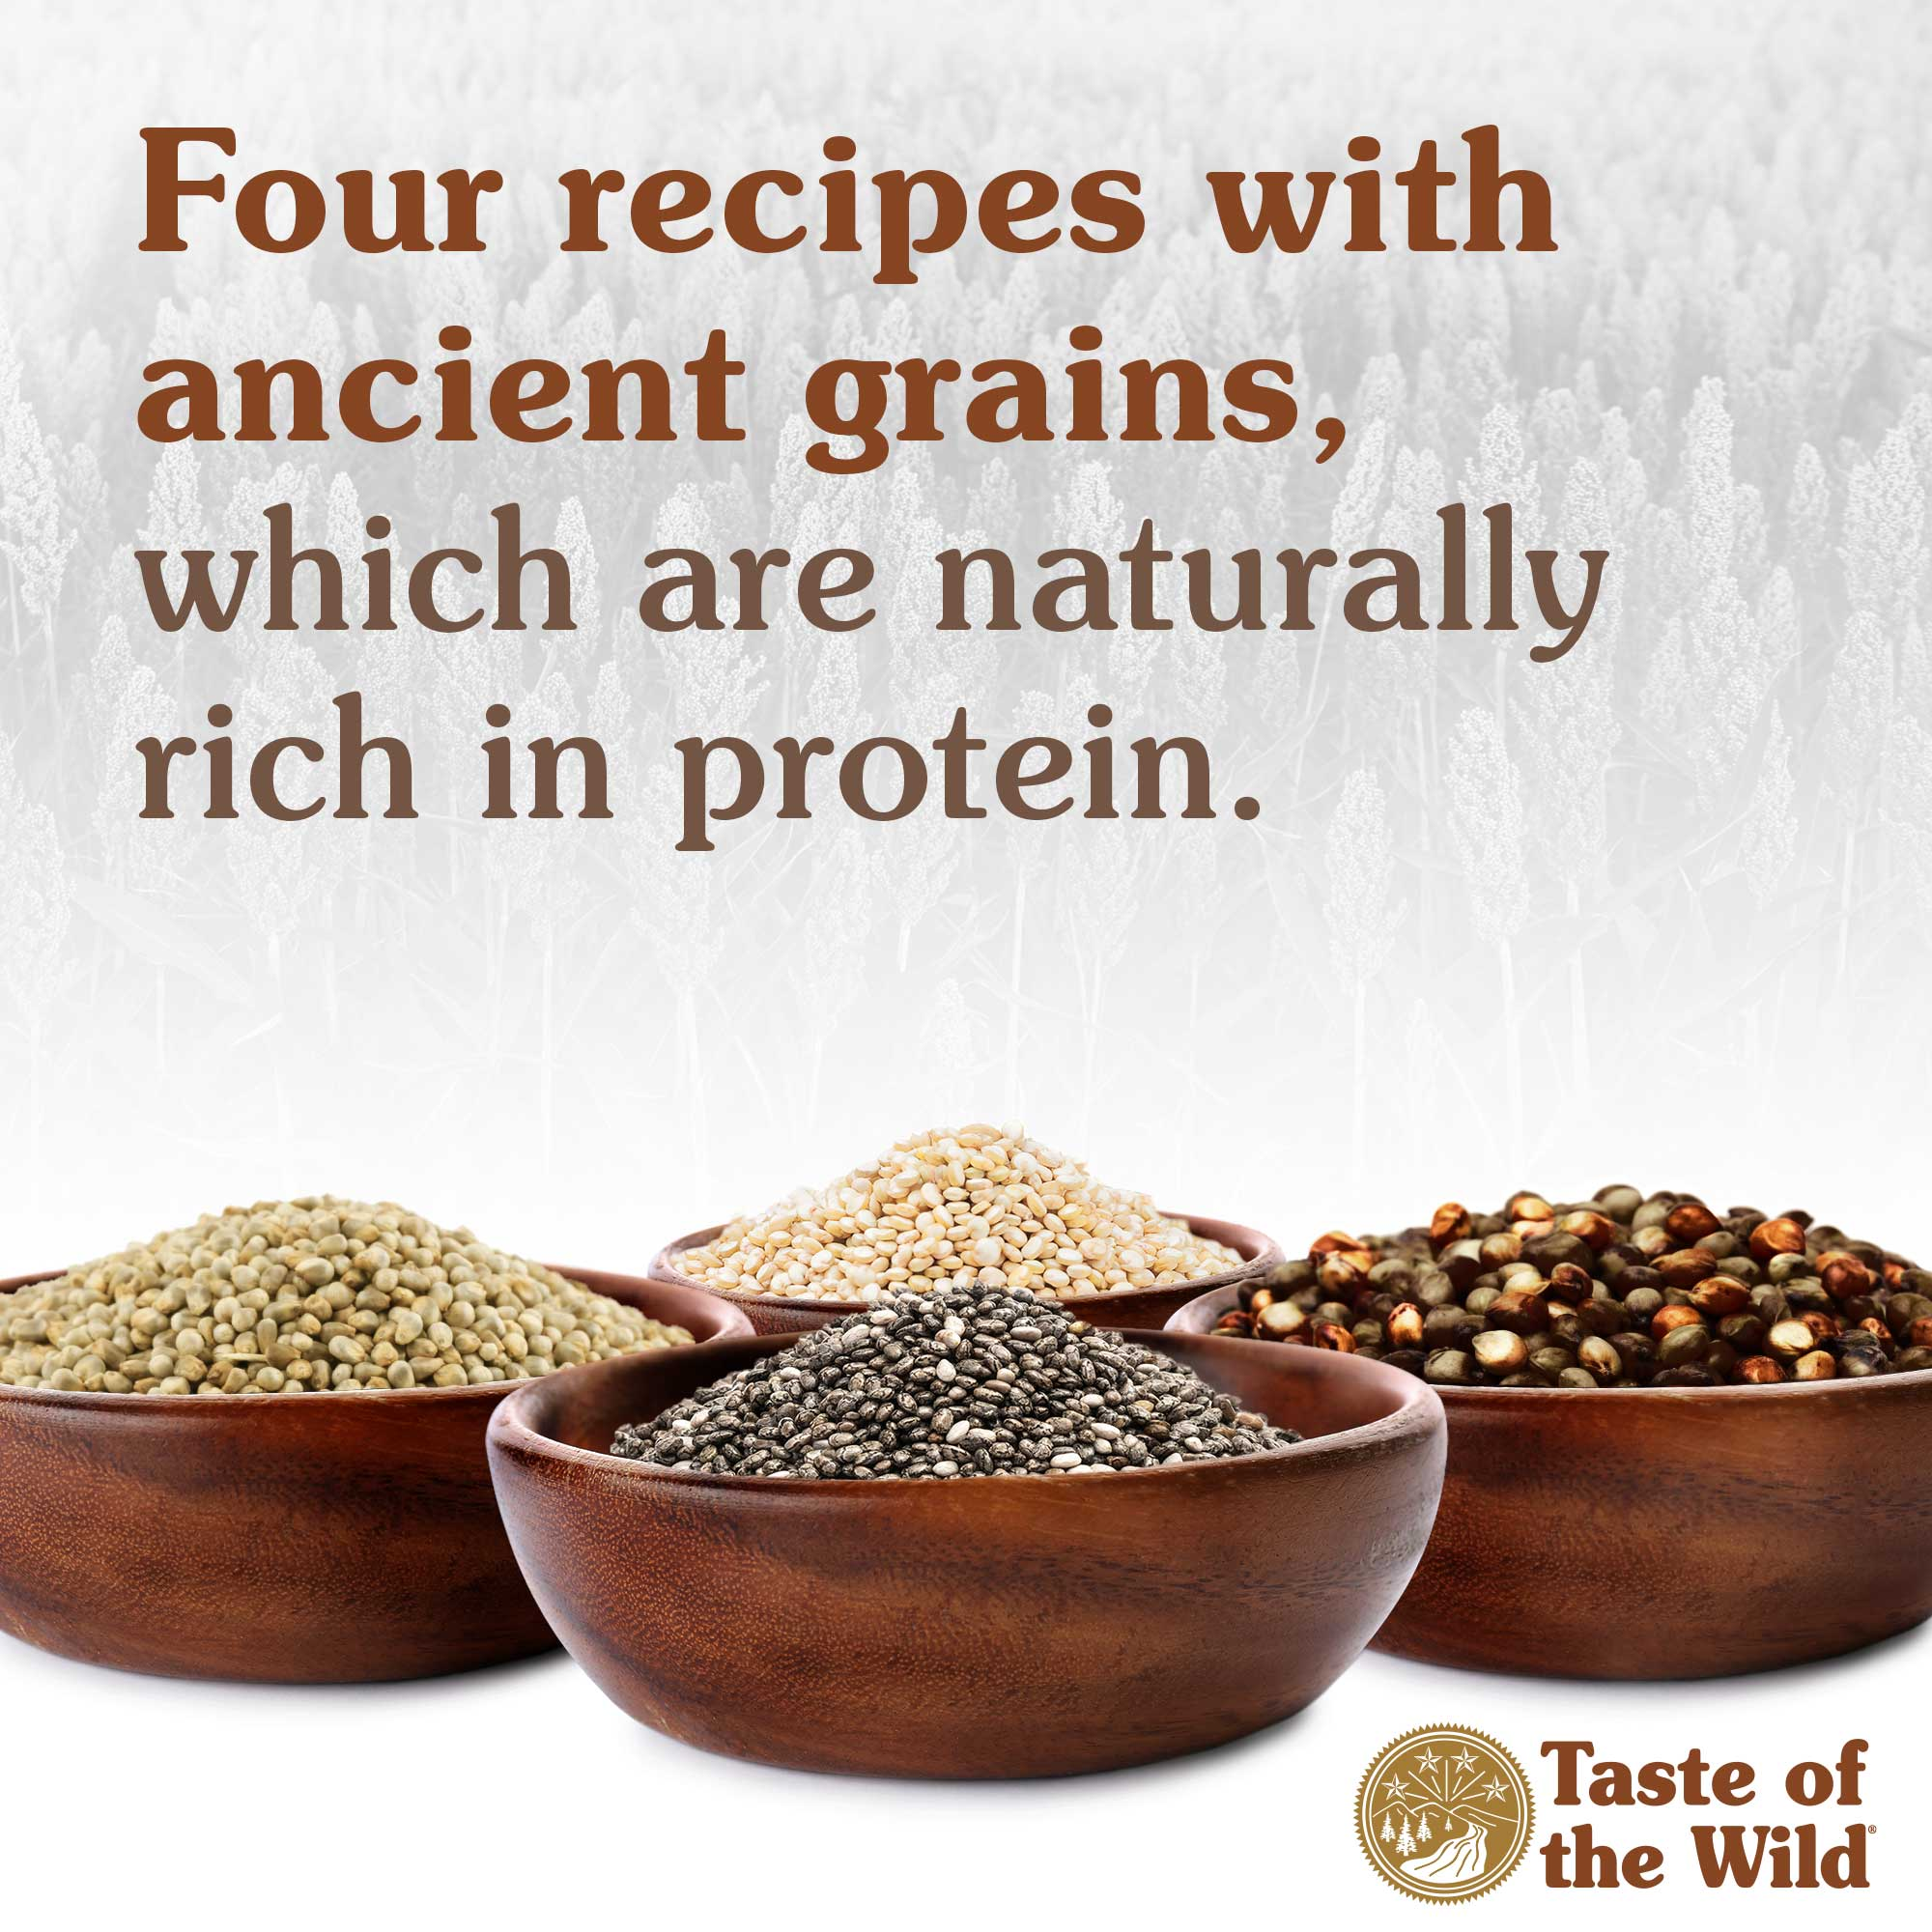 Four recipes with ancient grains, which are naturally rich in protein.